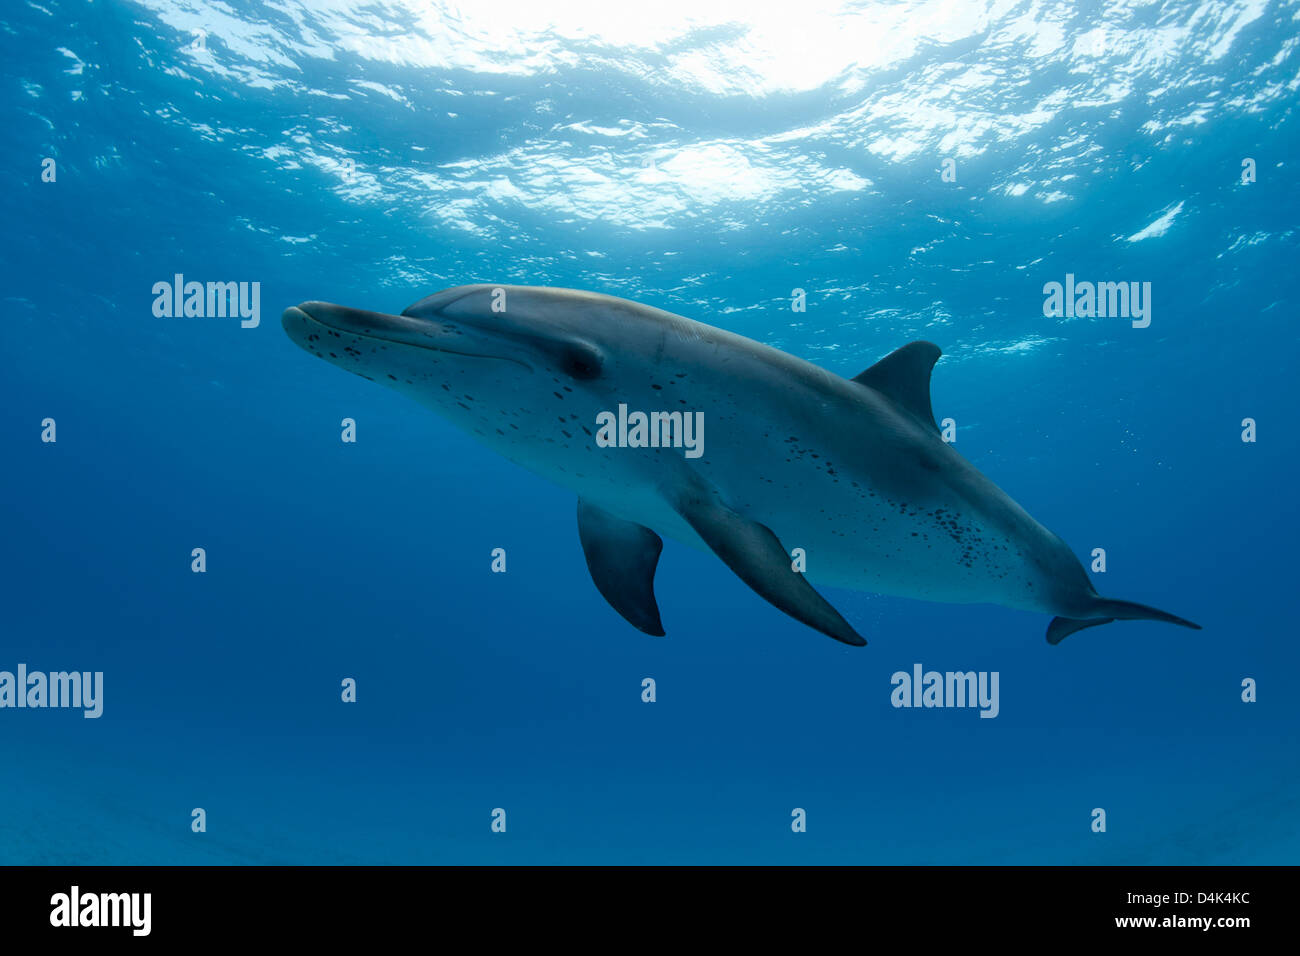 Dolphin swimming in tropical water - Stock Image